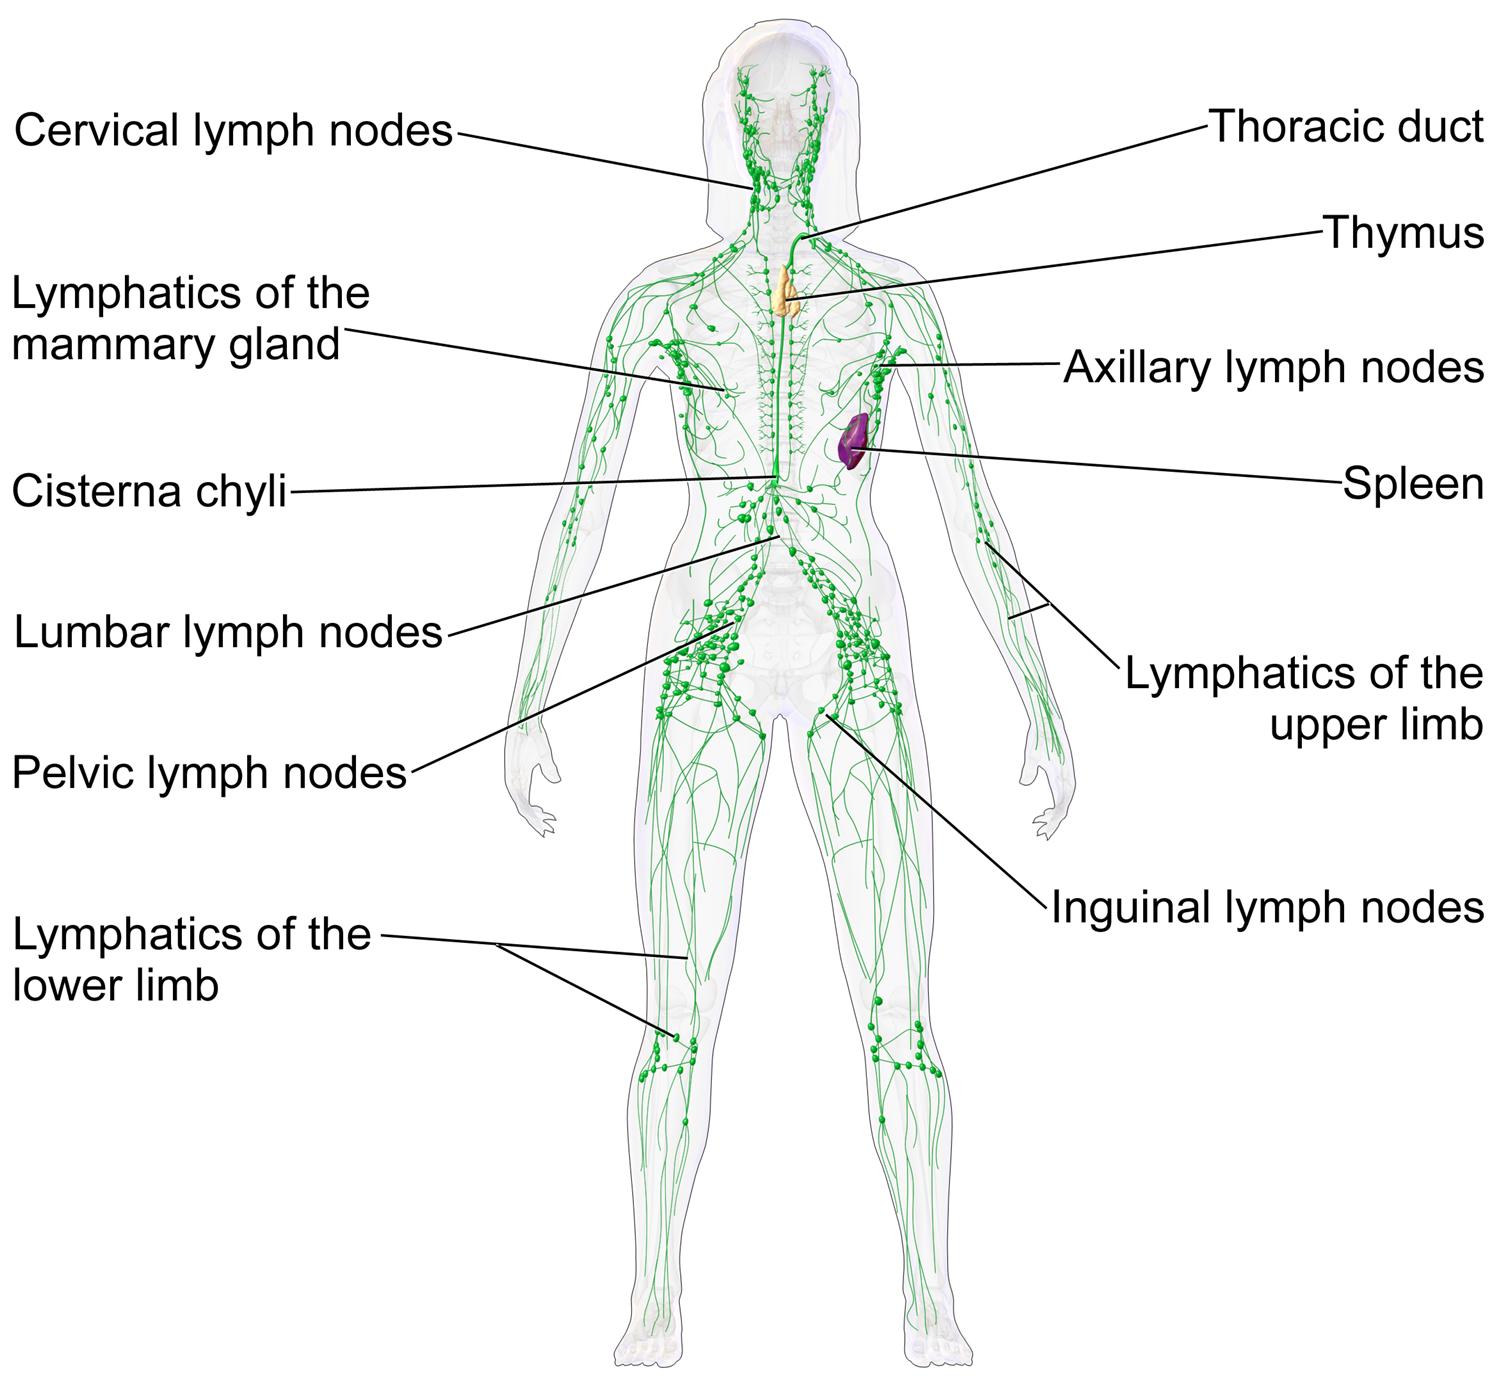 Pictures Of The Lymphatic System In The Body Pictures Wallpapers